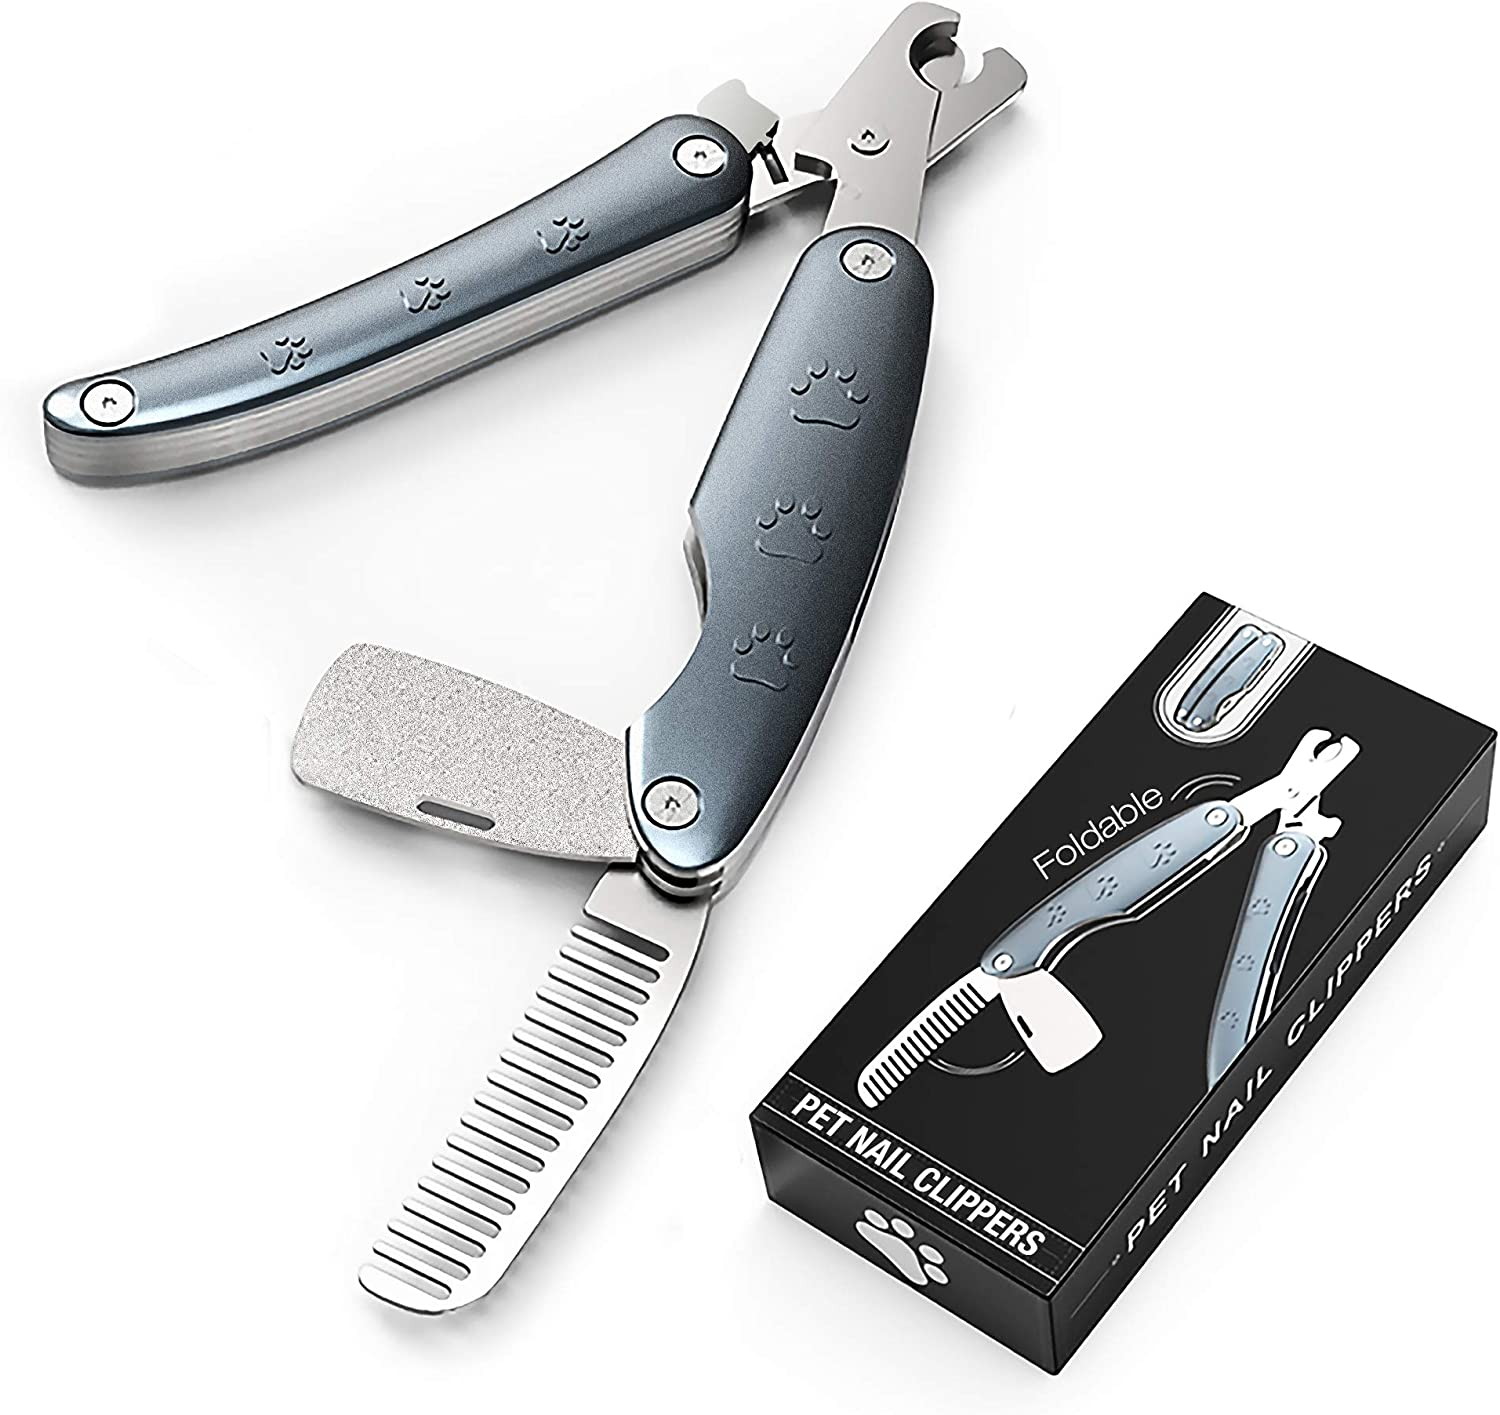 PETXIAOWU Dog Nail Clippers and Trimmer with File and Grooming Brush, Heavy Duty Nailclipper with Safety Guard to Avoid Over-Cutting for Cat, Dog, Rabbit, Guinea Pig at Home